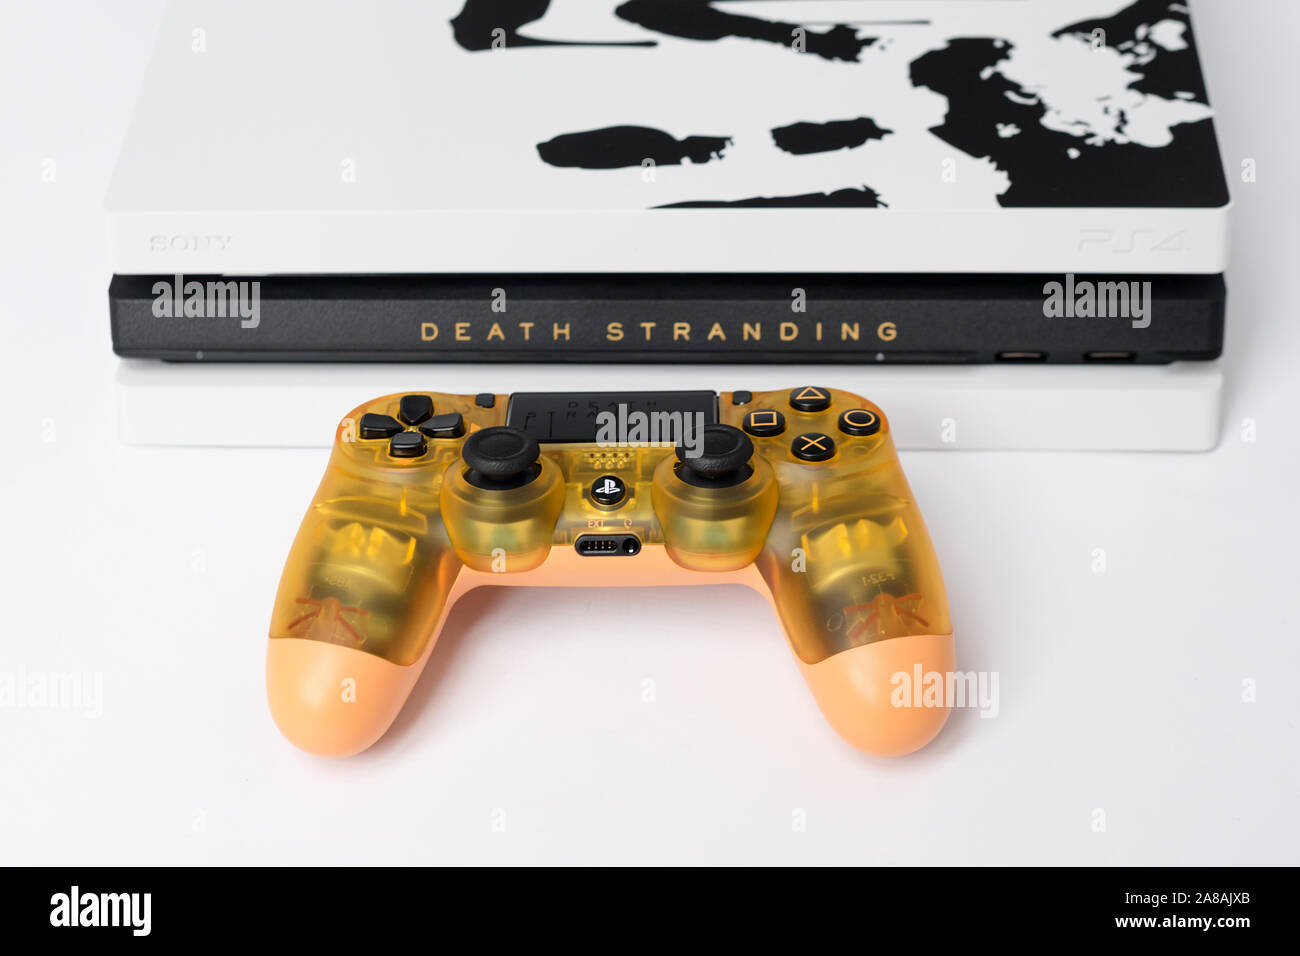 Kiev Ukraine November 07 2019 Death Stranding Limited Edition Ps4 Pro Sony Playstation 4 Game Console And Transparent Controller On White Stock Photo Alamy